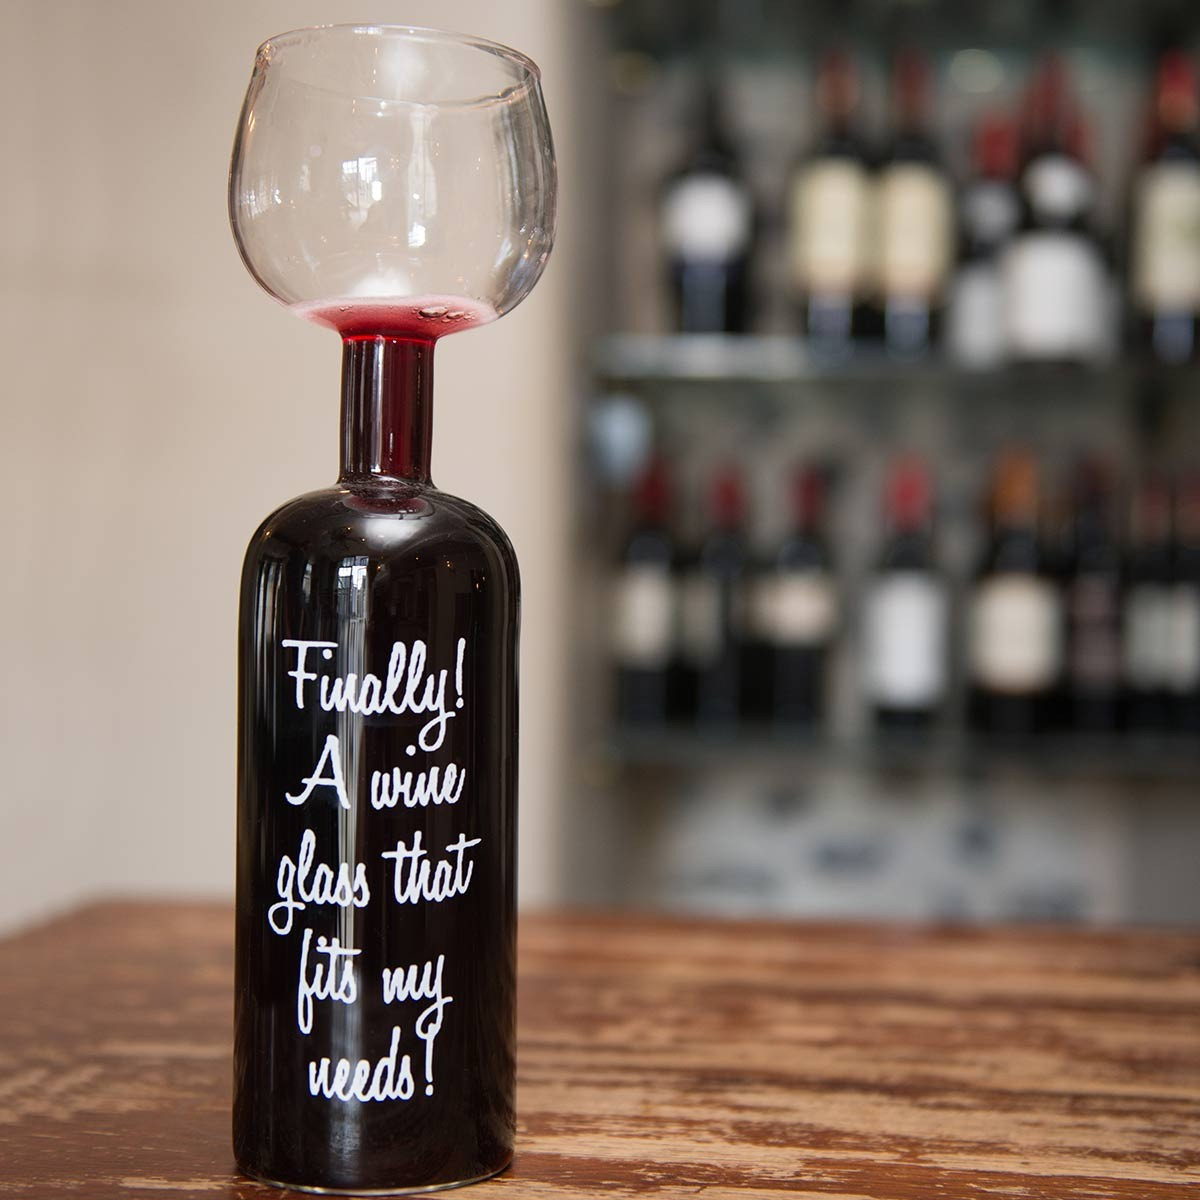 The Wine Bottle Glass Holds A Whole Bottle The Present